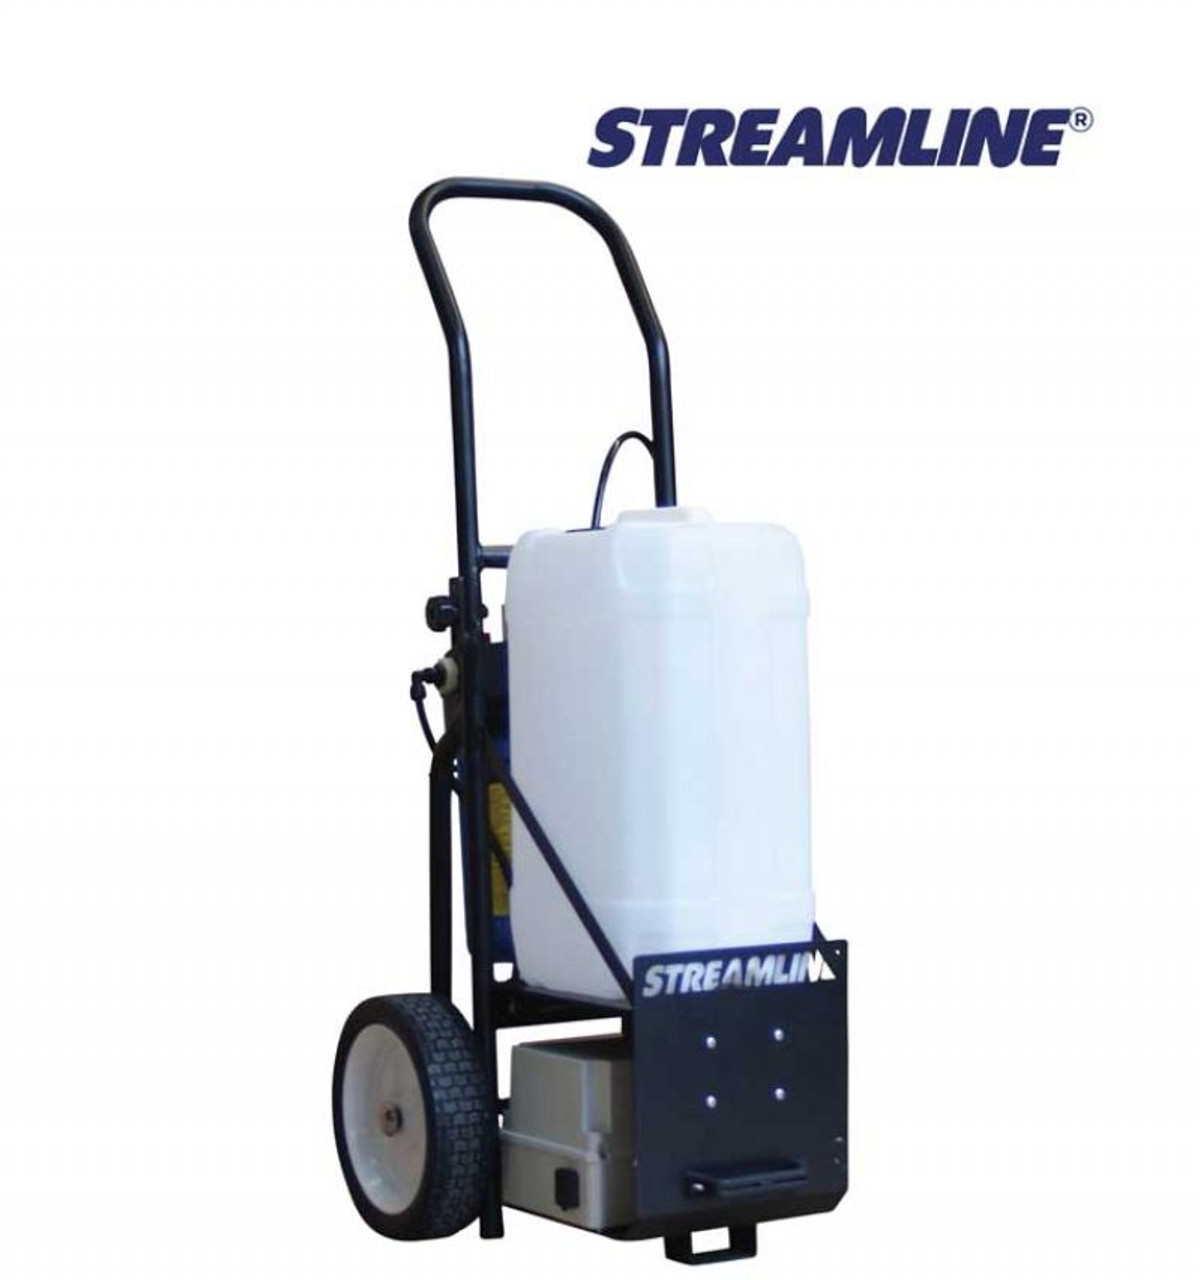 Streamline STREAMFLO Trolley, Mobile Water Fed Cleaning Solution